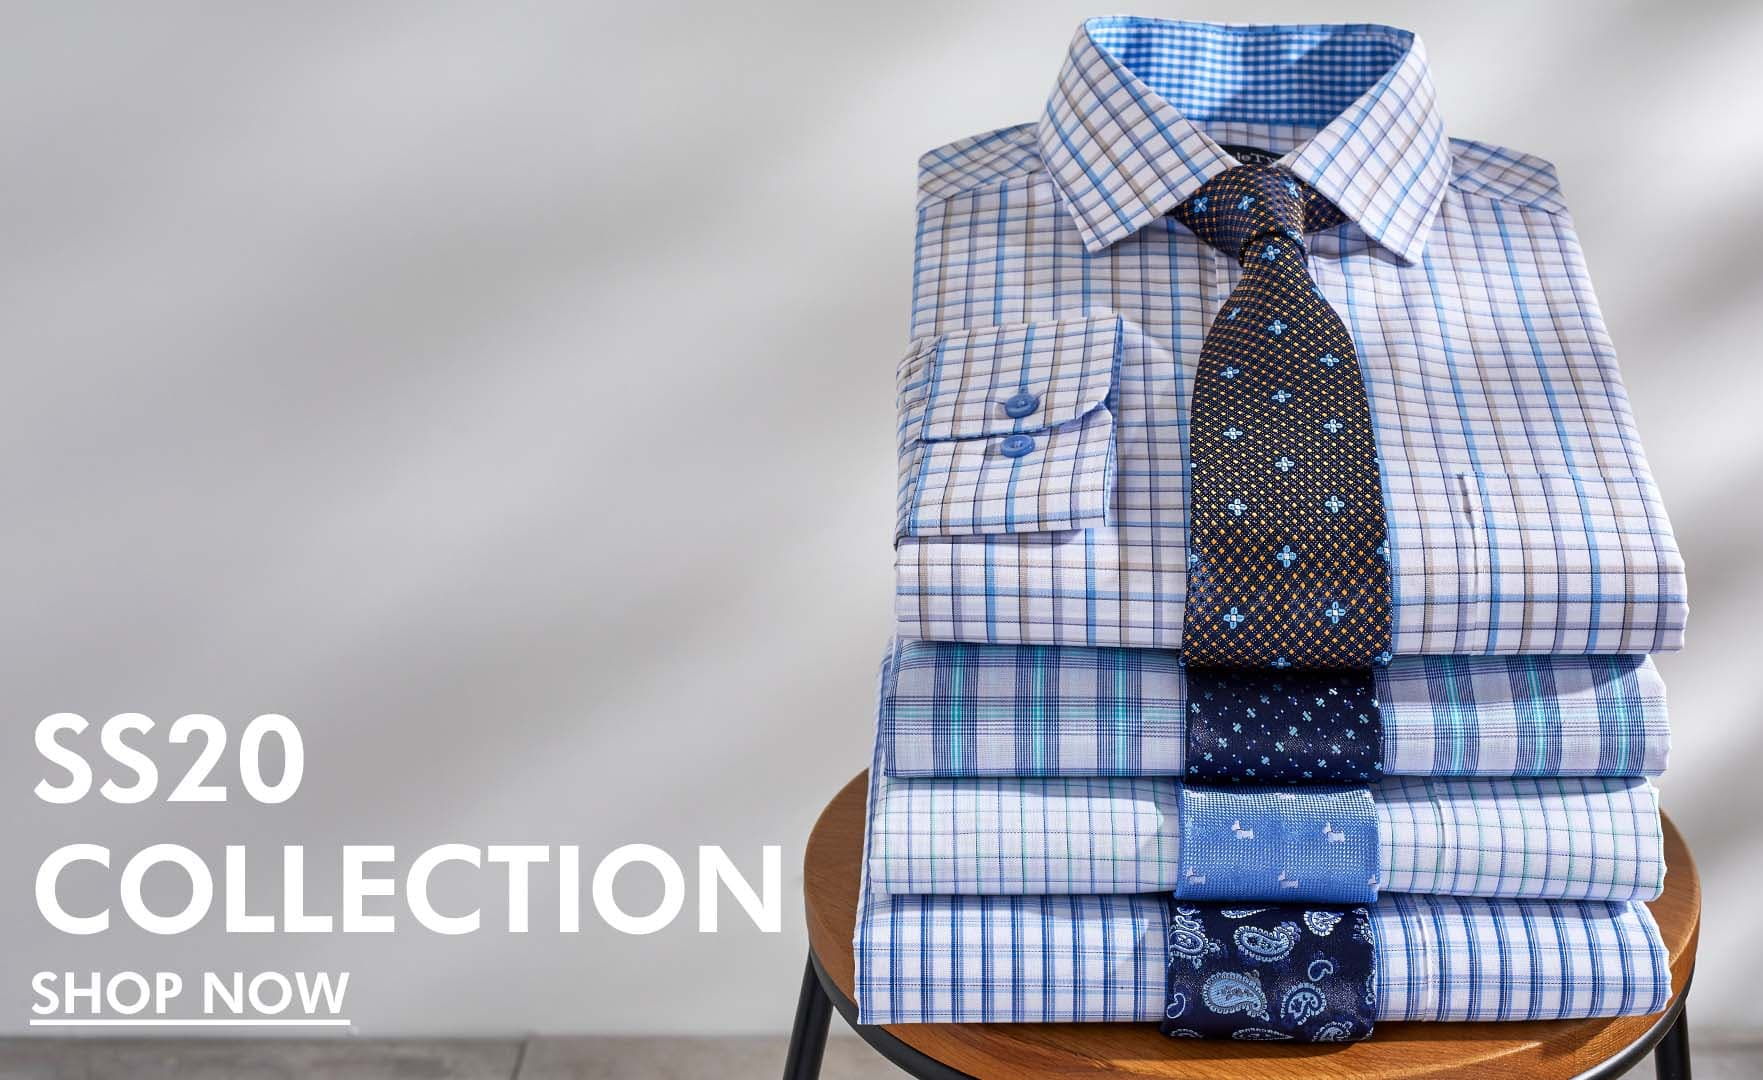 New Season Collection Men's Shirts